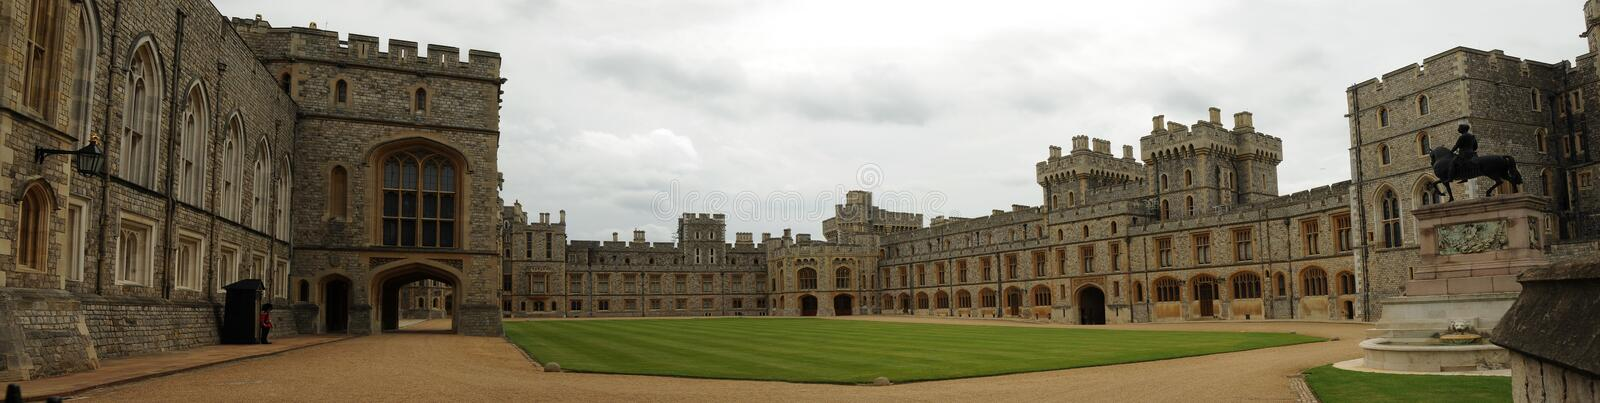 Windsor castle stock image